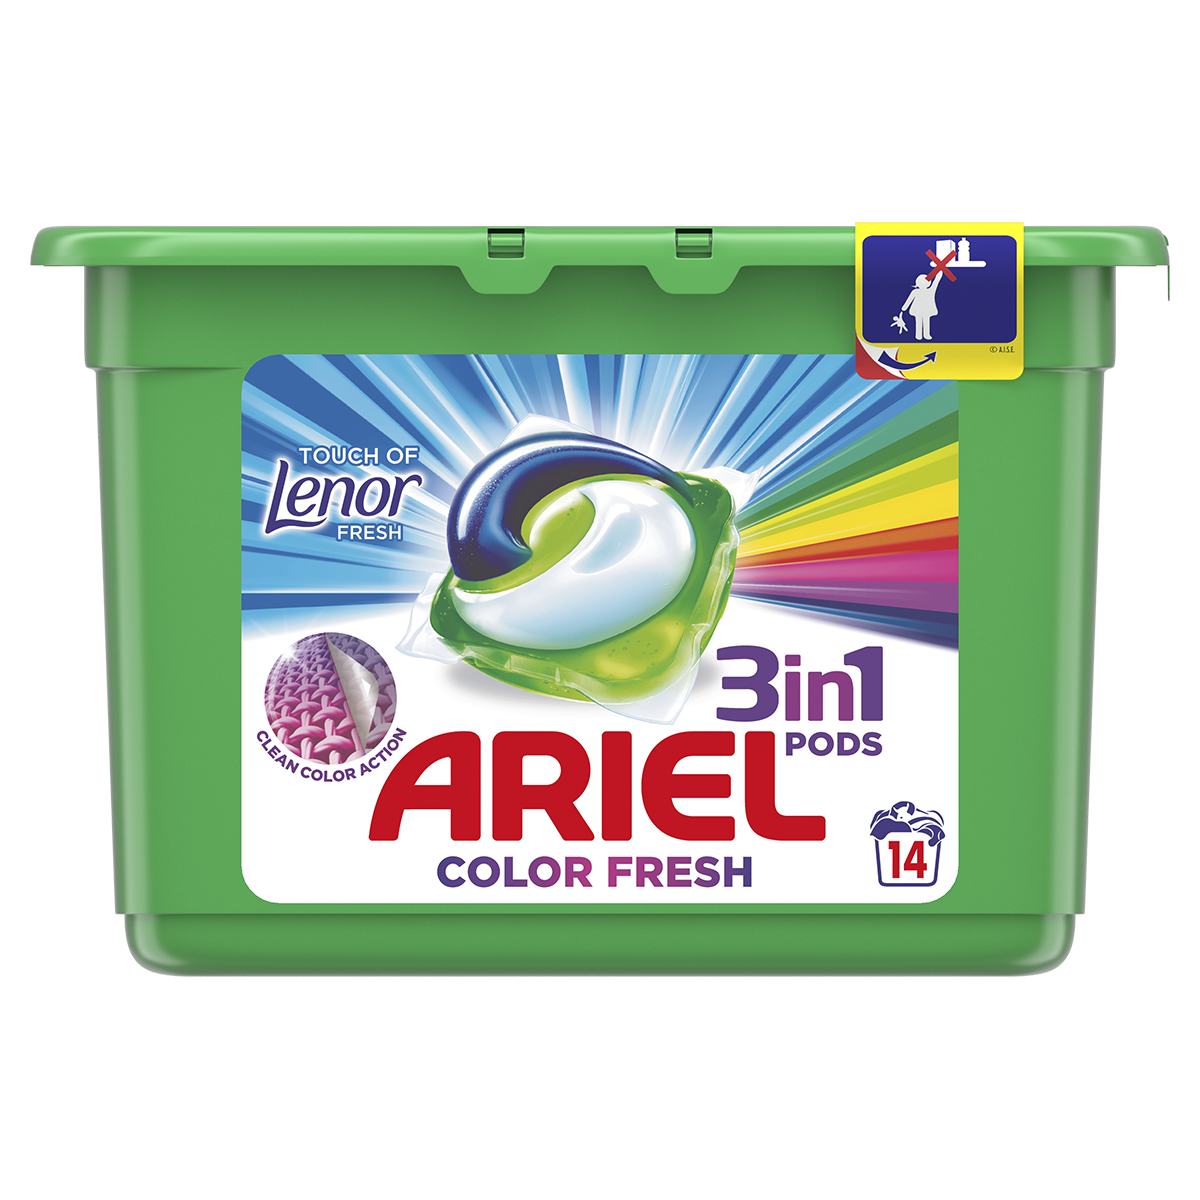 ARIEL Touch of Lenor All in 1 (14ks) - gelové kapsle